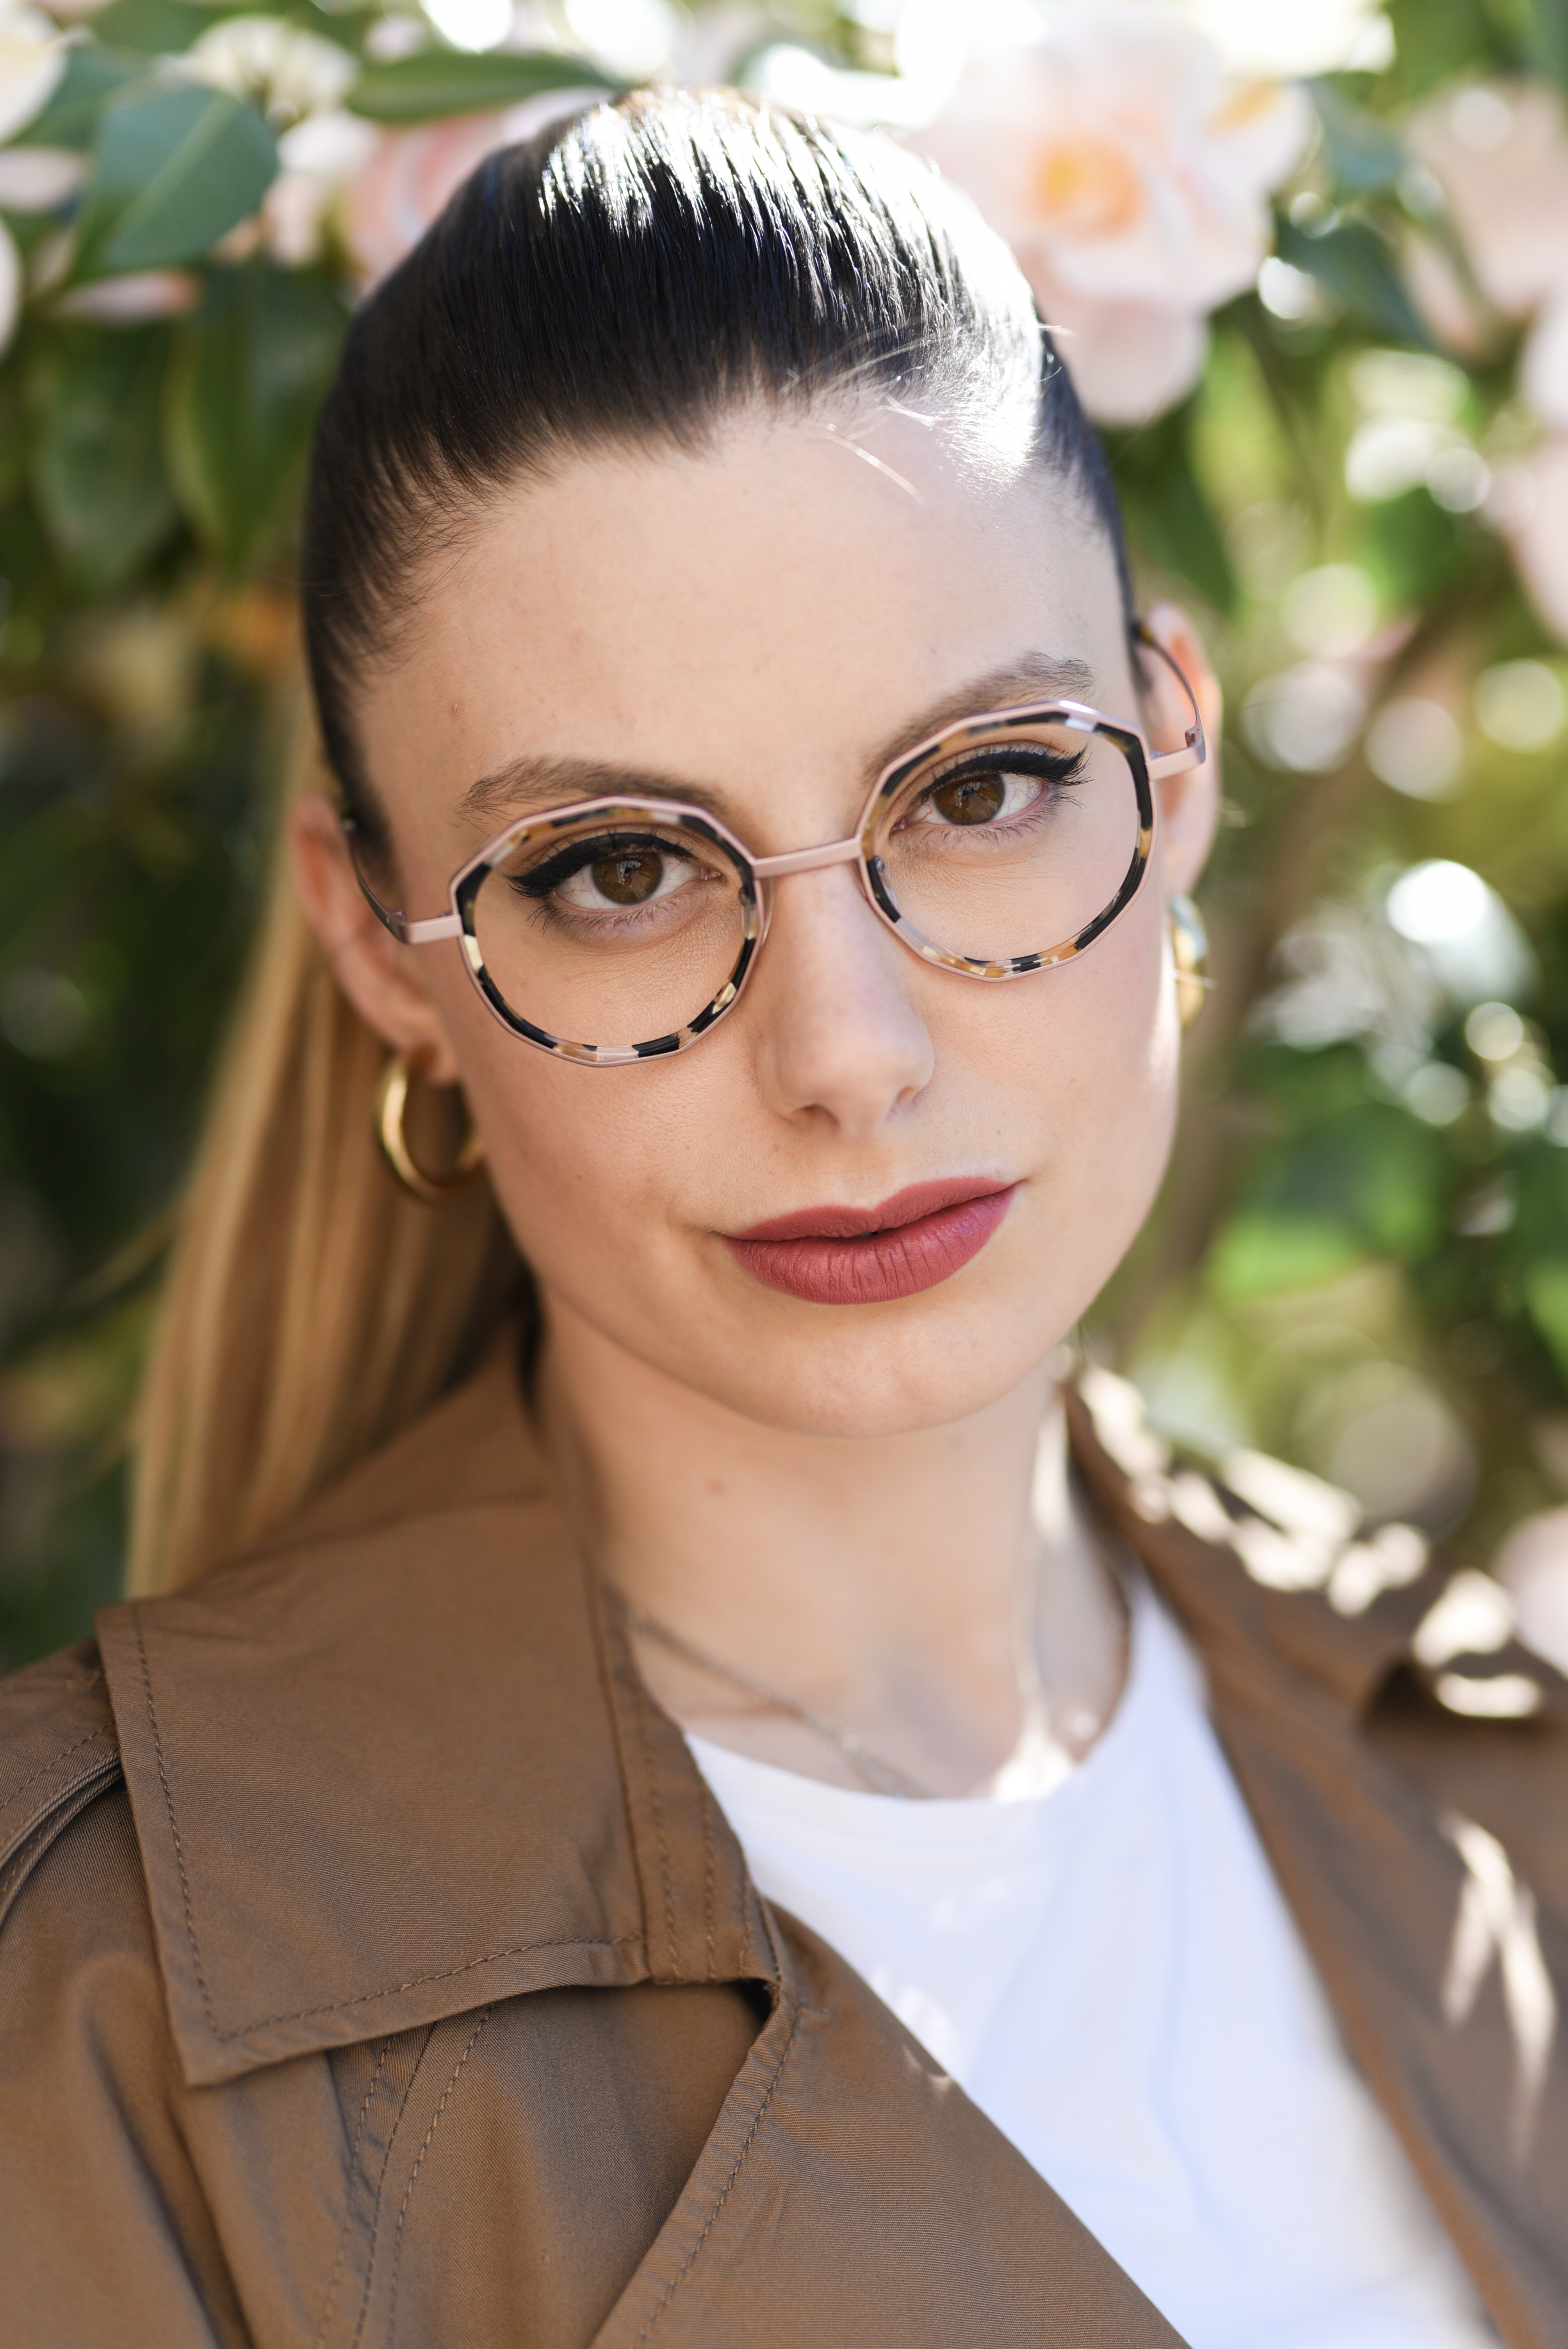 giulia de martin behind my glasses naoned summer lunettes eyewear 2019 eyewear blogger influencer sunglasses eyeglasses